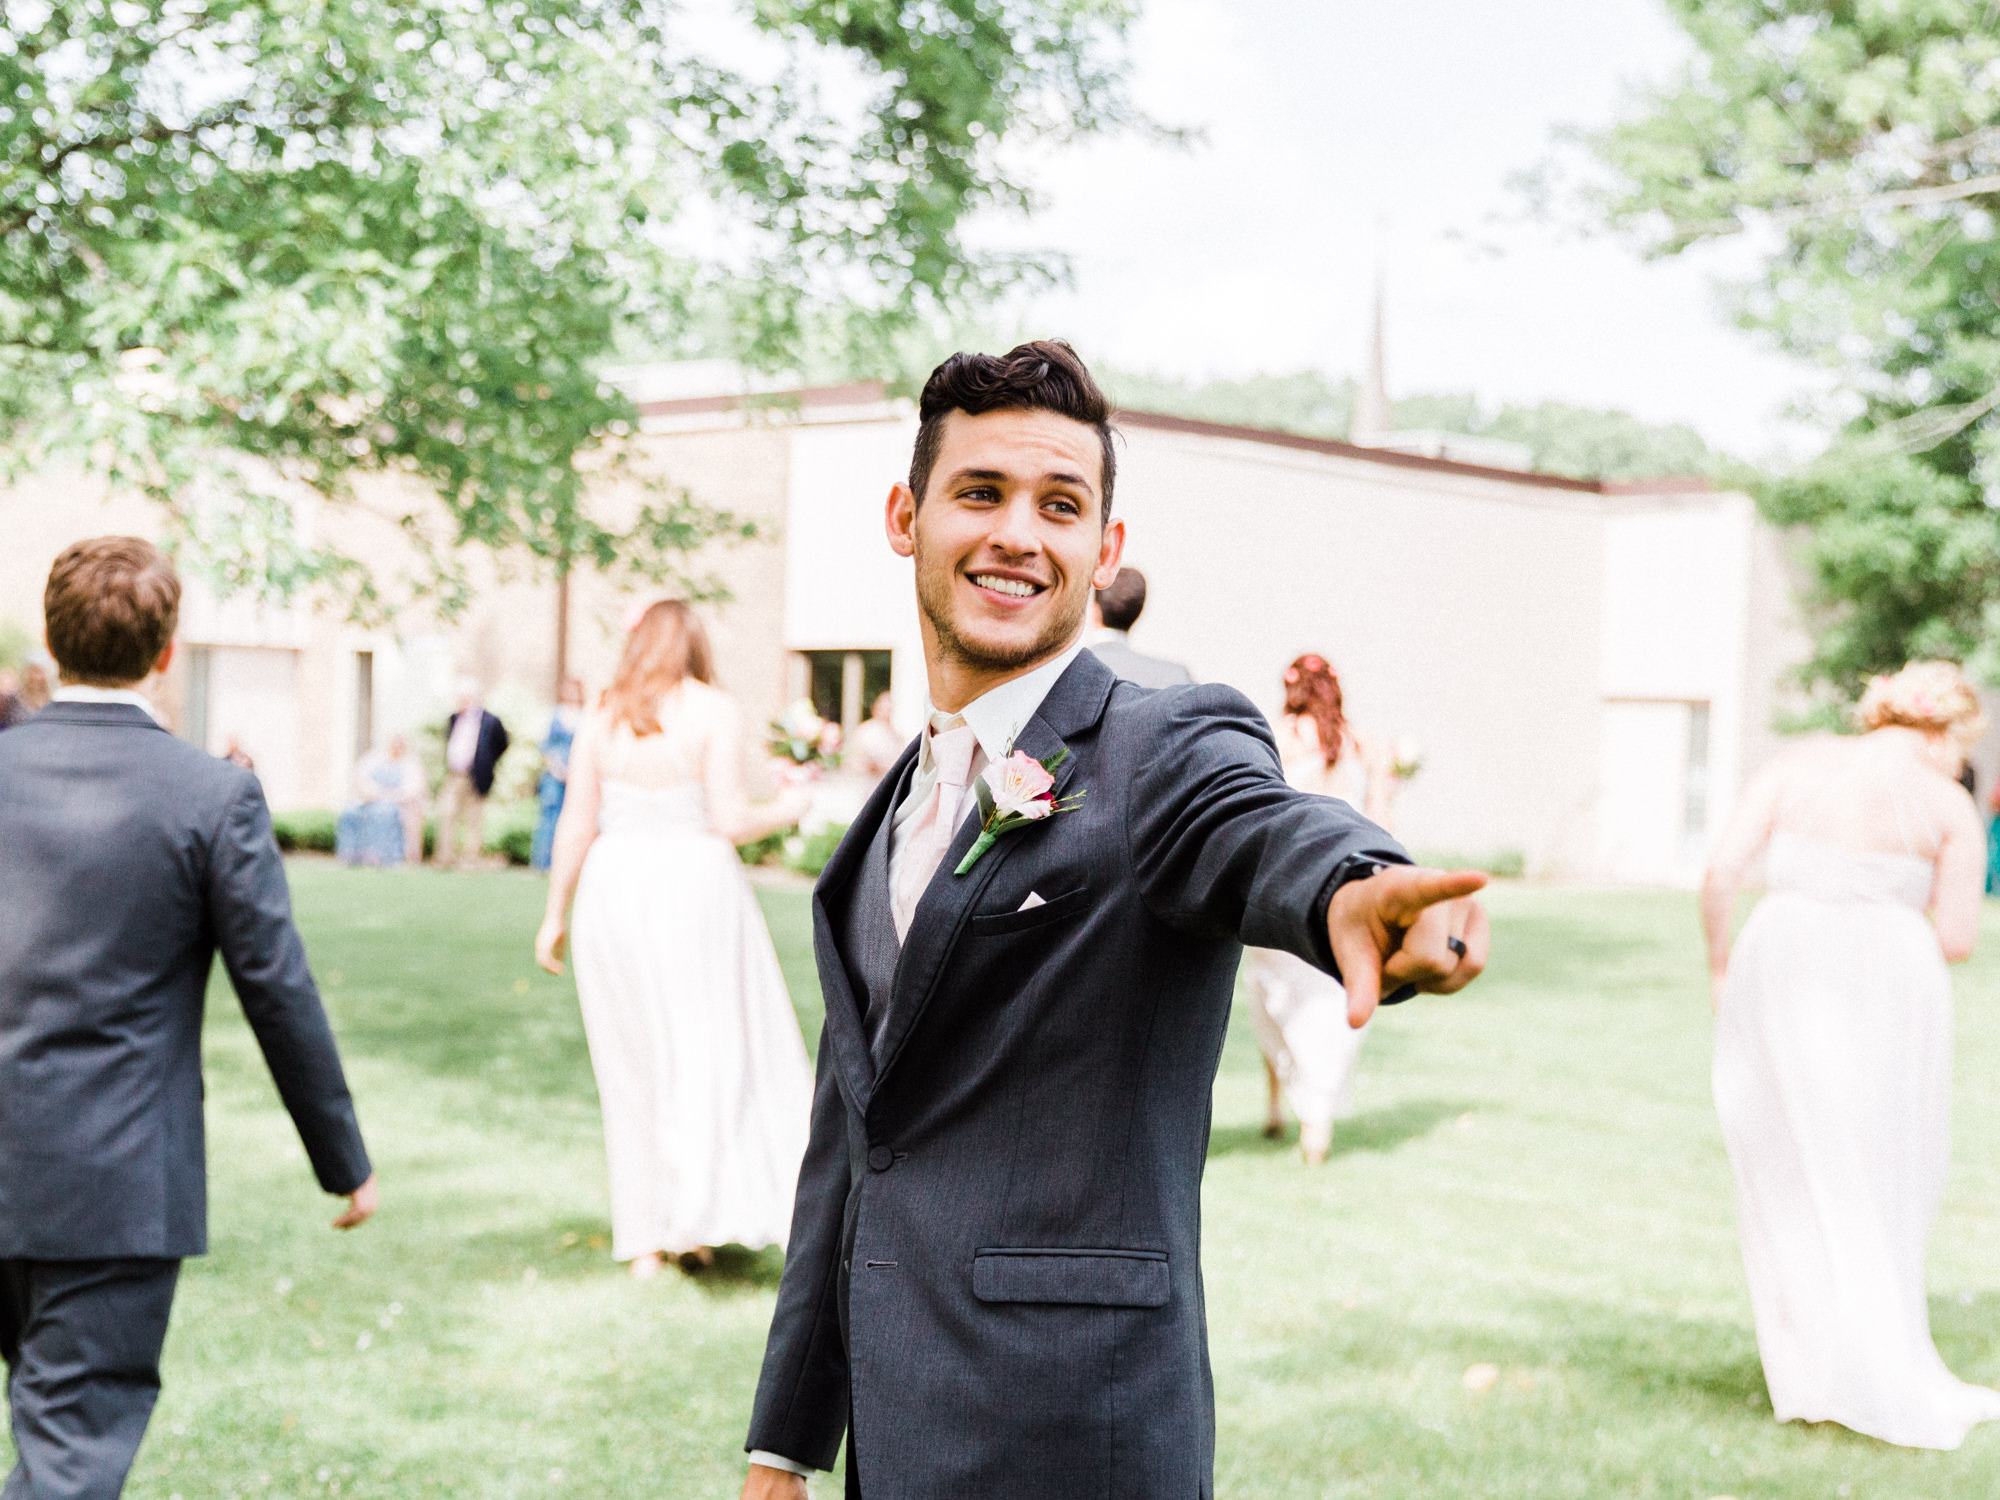 0047-TTFS-DALLAS-WEDDING-PHOTOGRAPHER-20180623.jpg